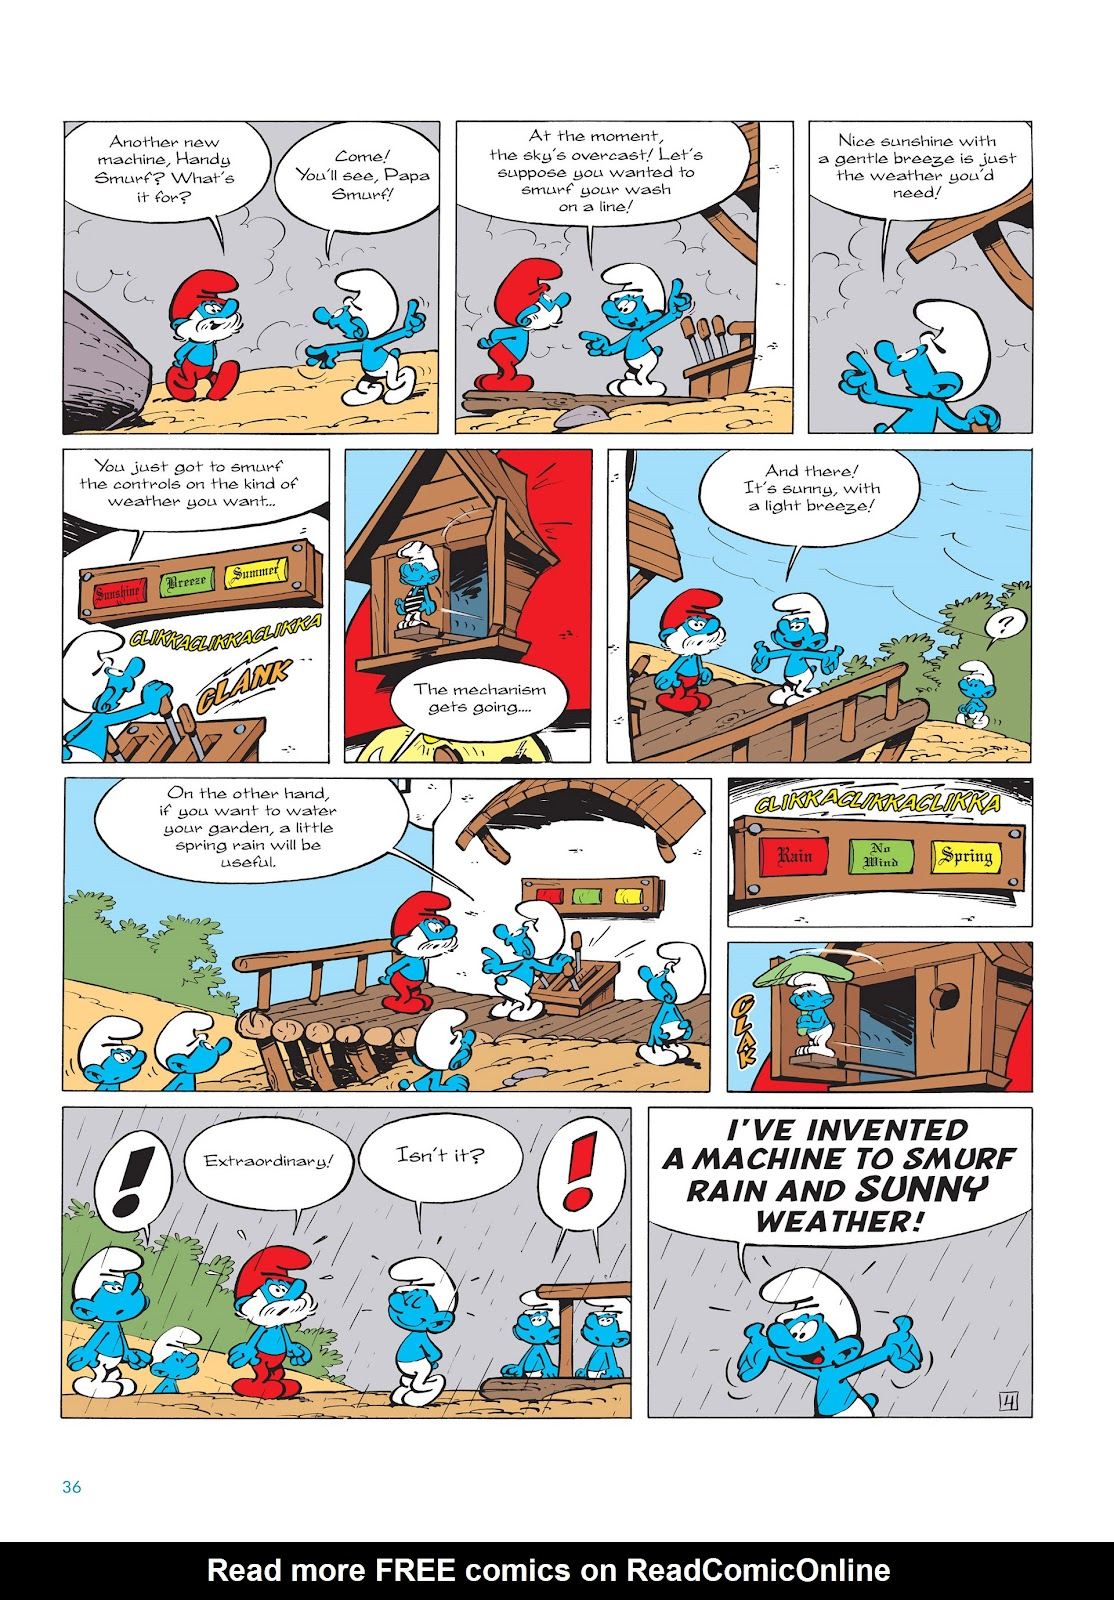 Read online The Smurfs comic -  Issue #14 - 37